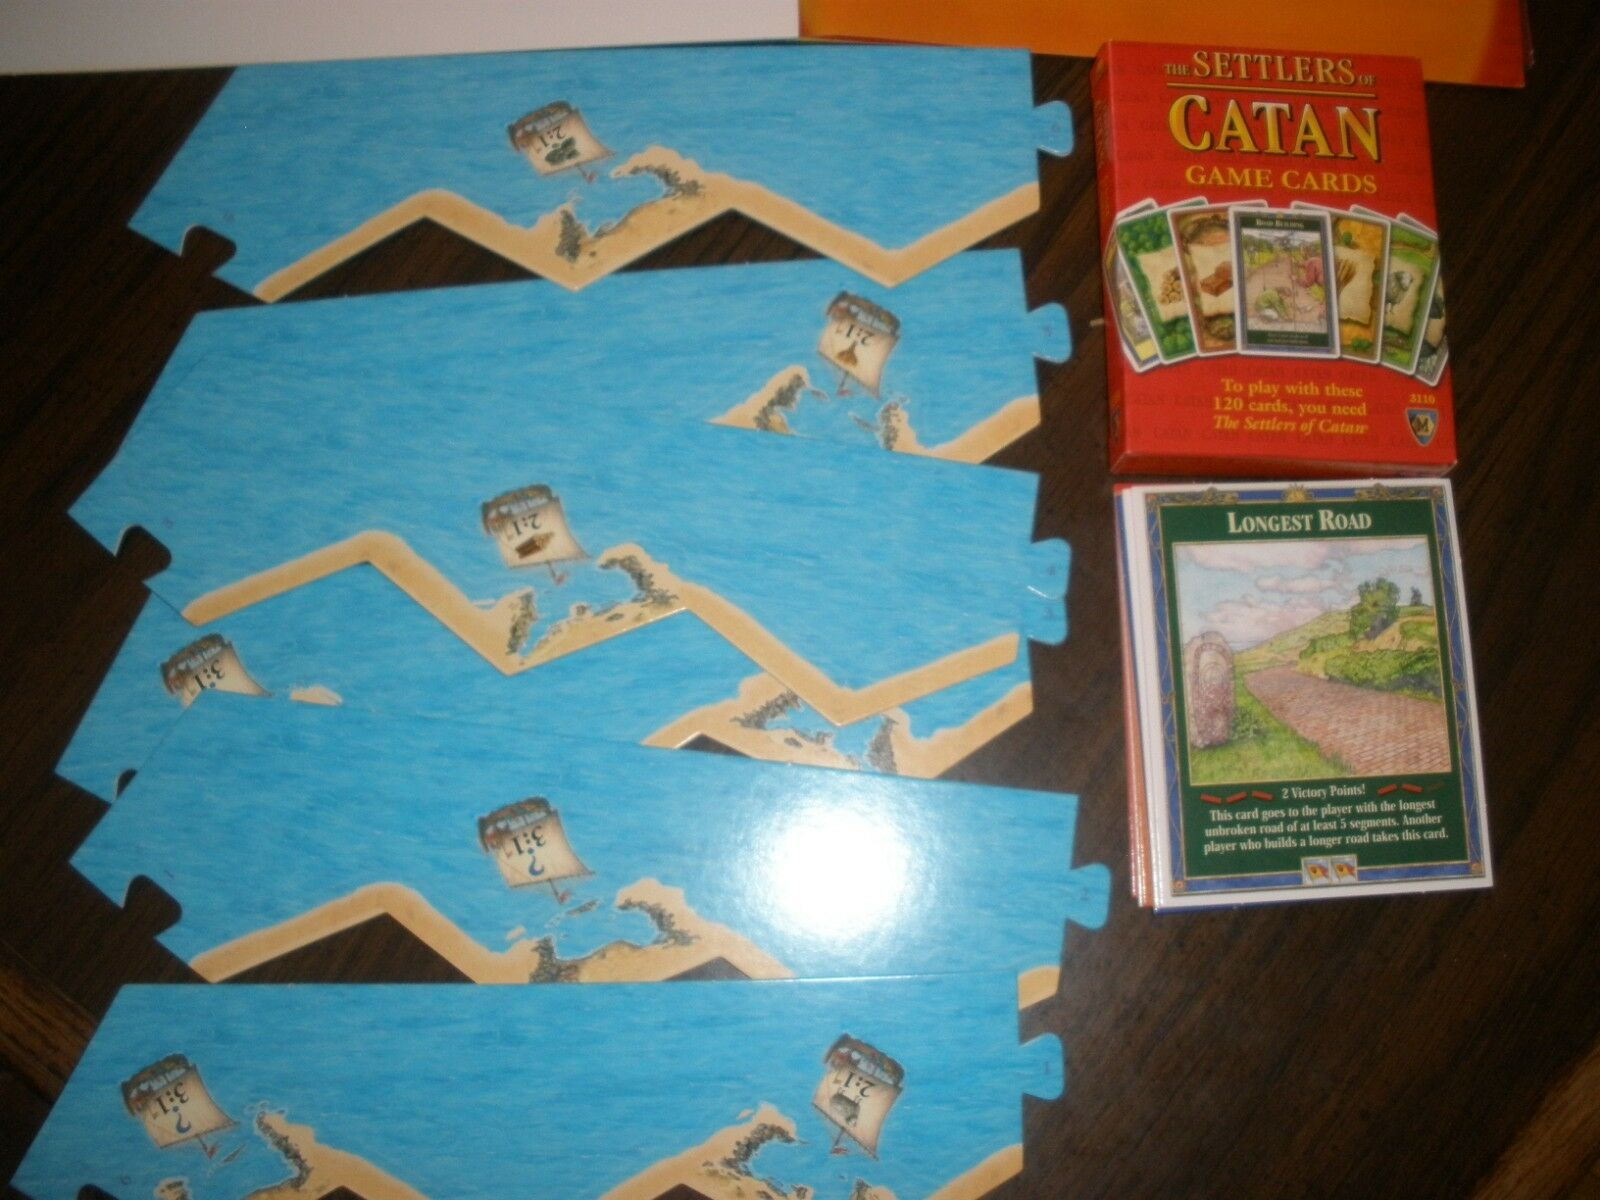 Settlers Of Catan 3061 Board Game Mayfair Games Edition Edition Edition Complete 2007 MINT ddcfcf